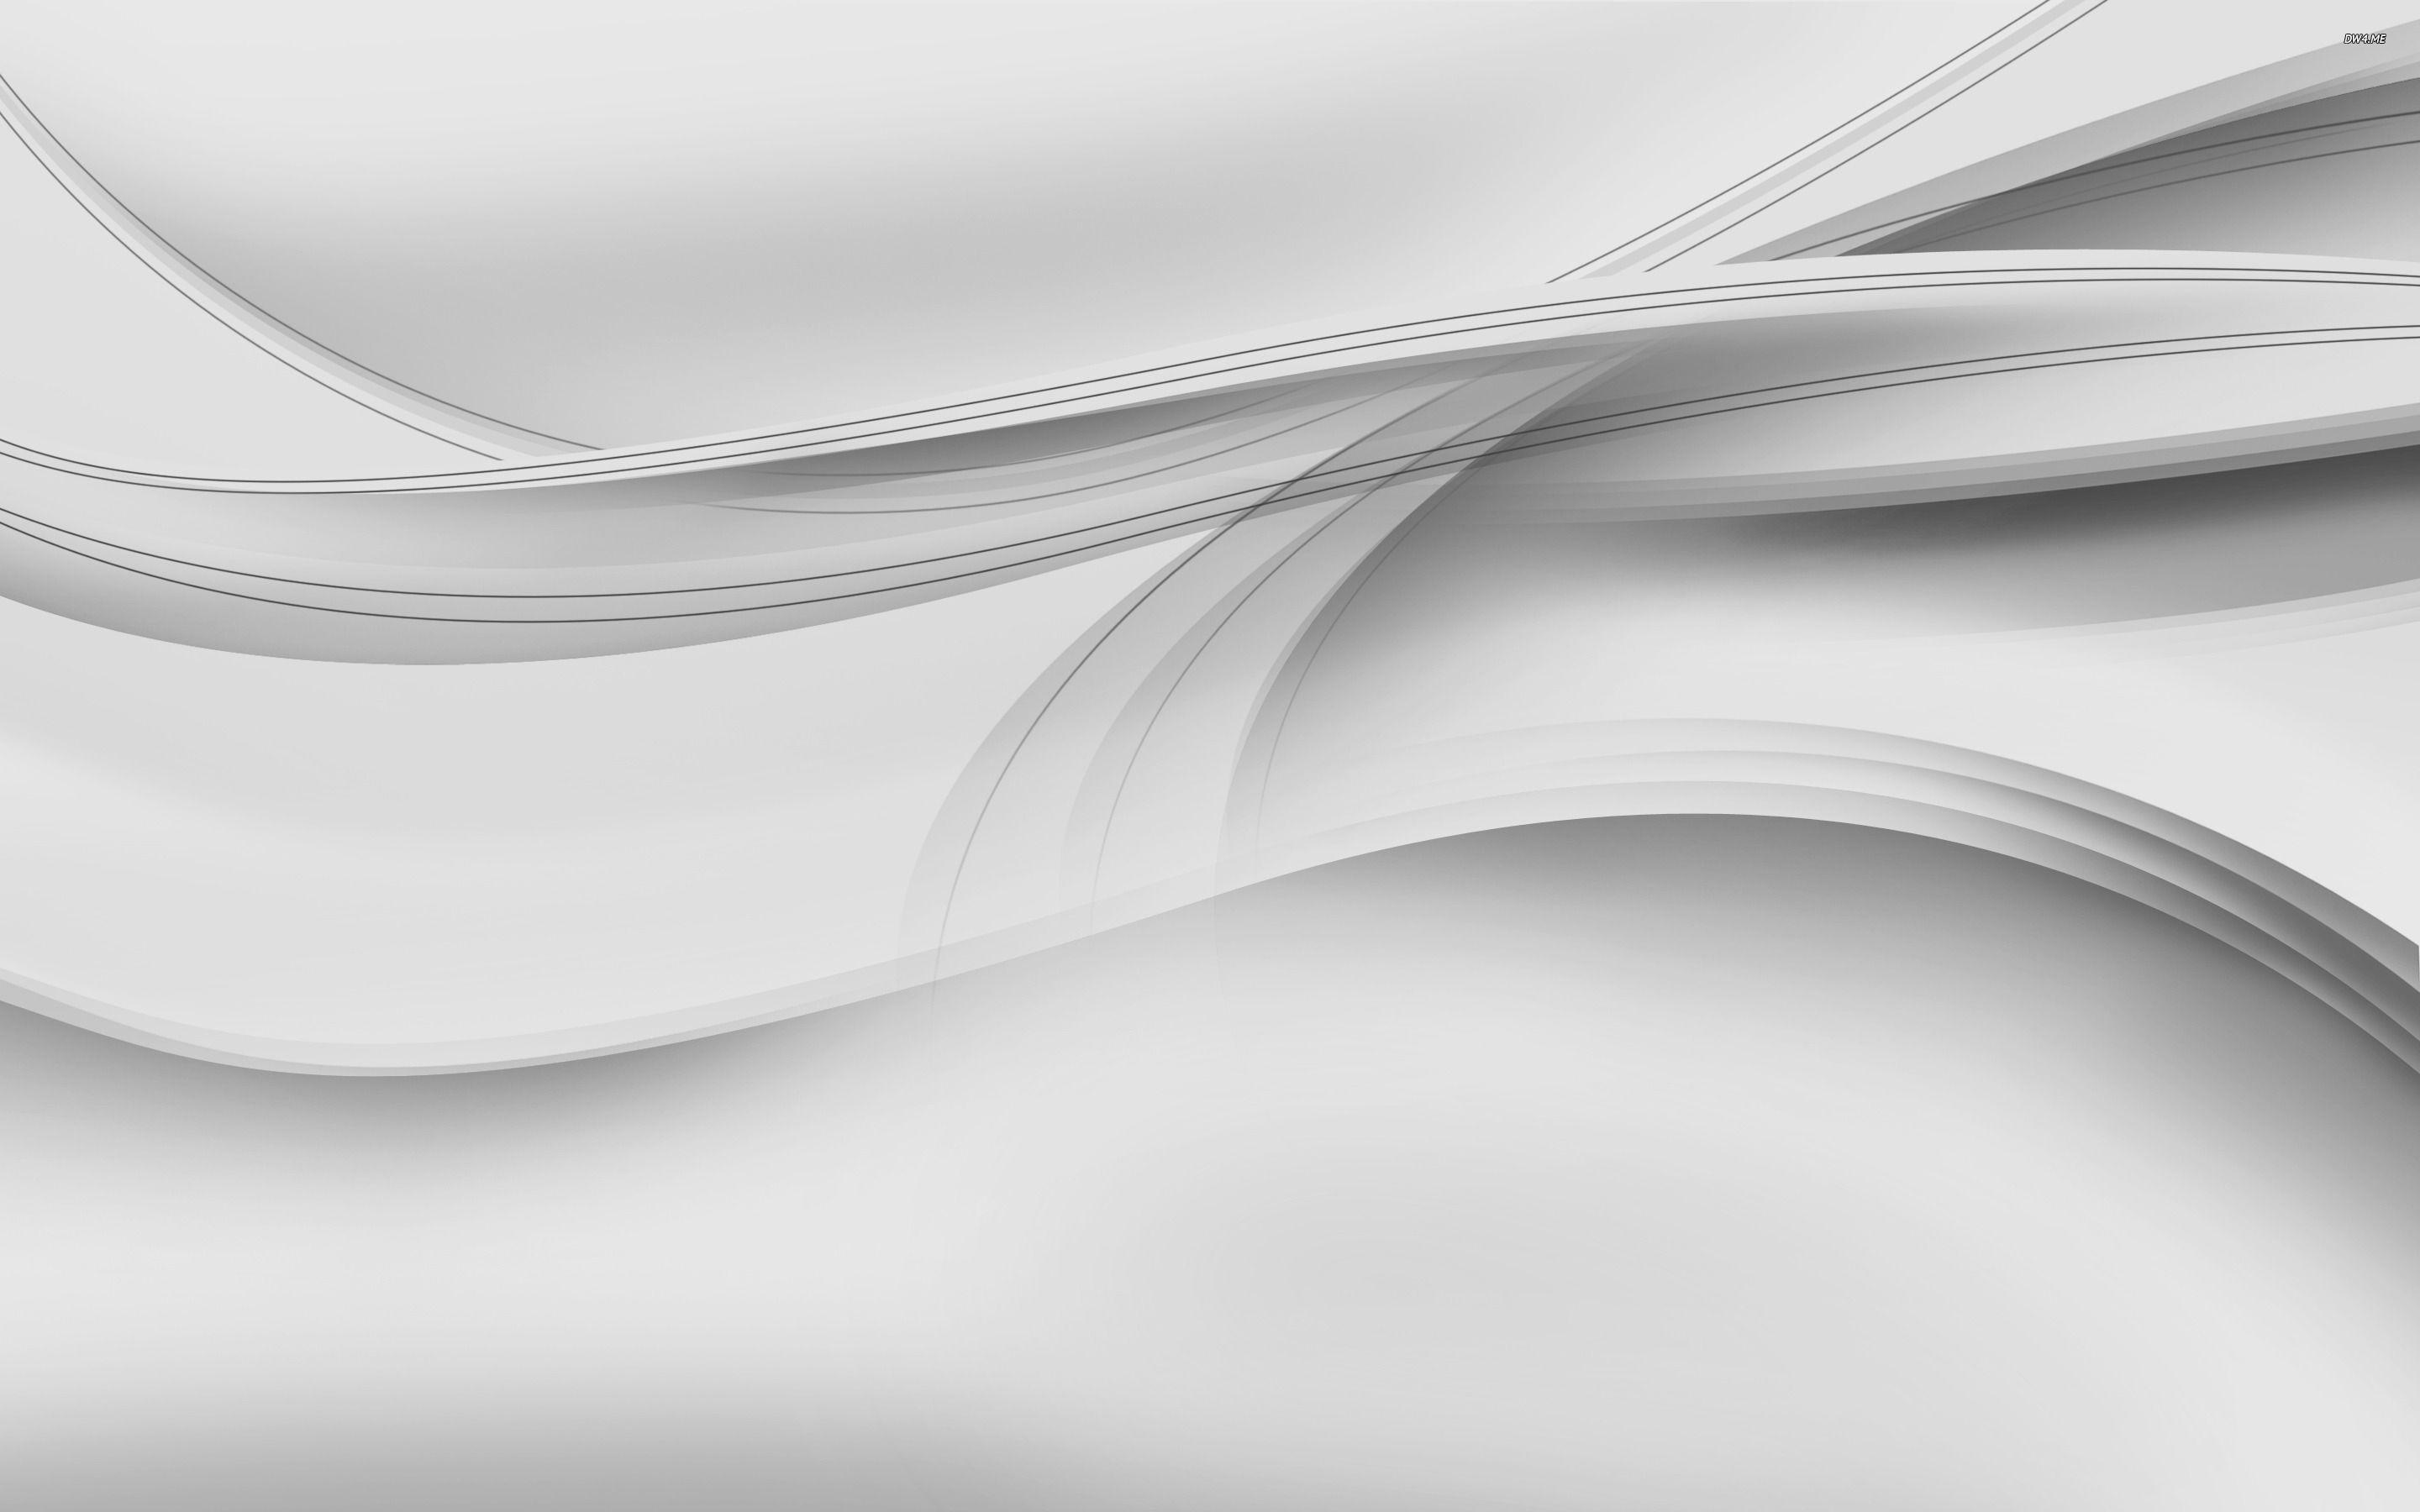 Silver Abstract Wallpapers - Wallpaper Cave